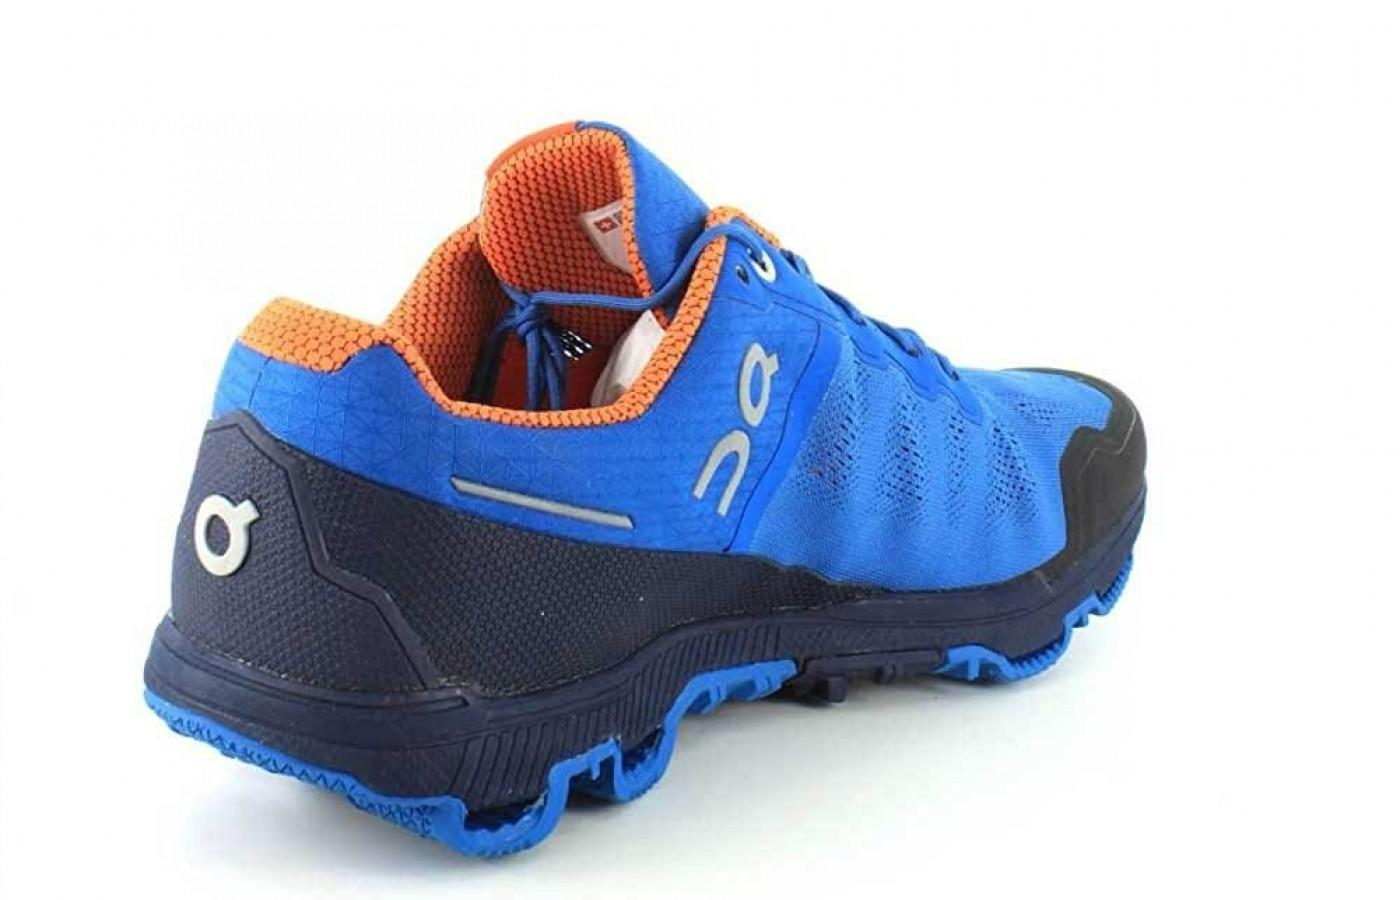 The shoe features a 6 millimter drop and added cushioning in the midsole